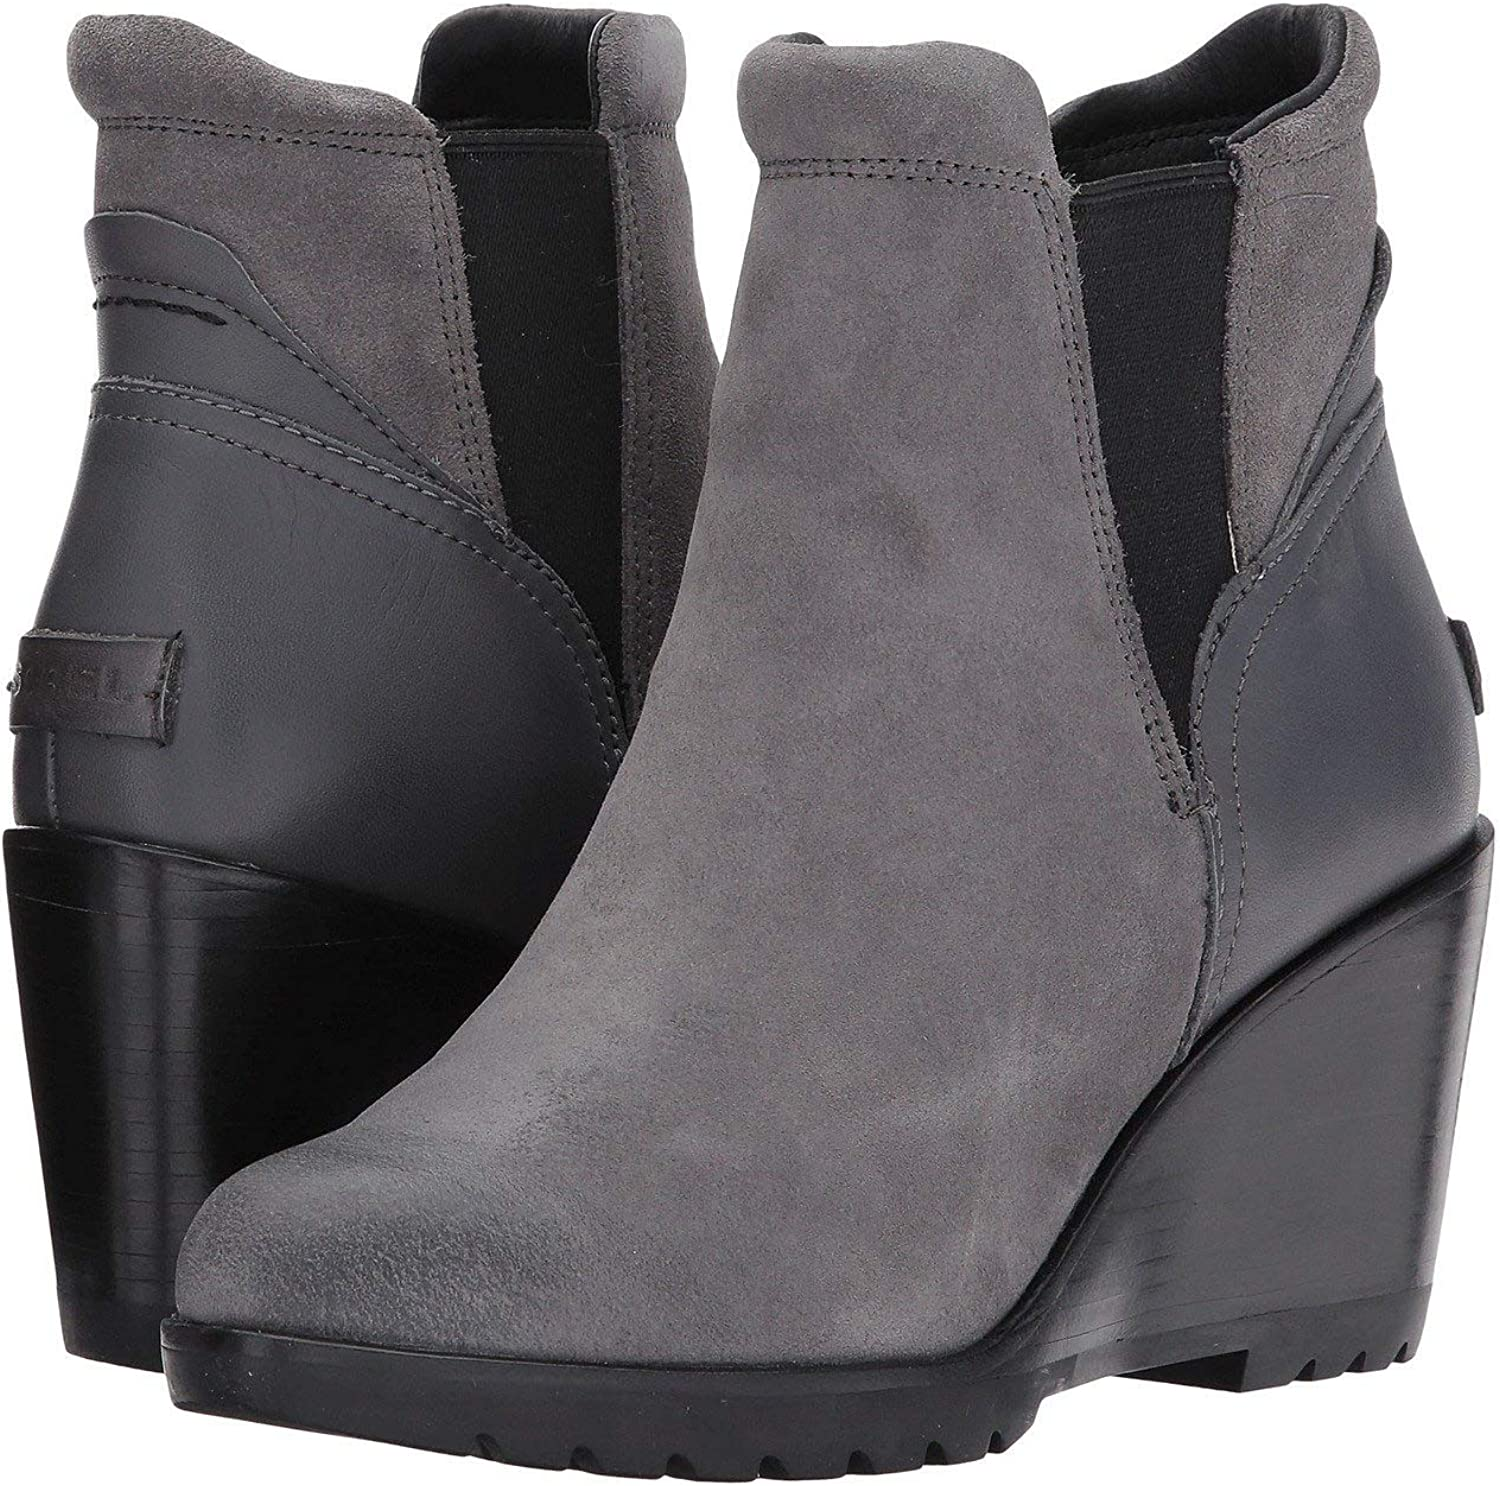 Sorel Women/'s After Hours Chelsea Wedge Boots Quarry Grey Suede New With Box